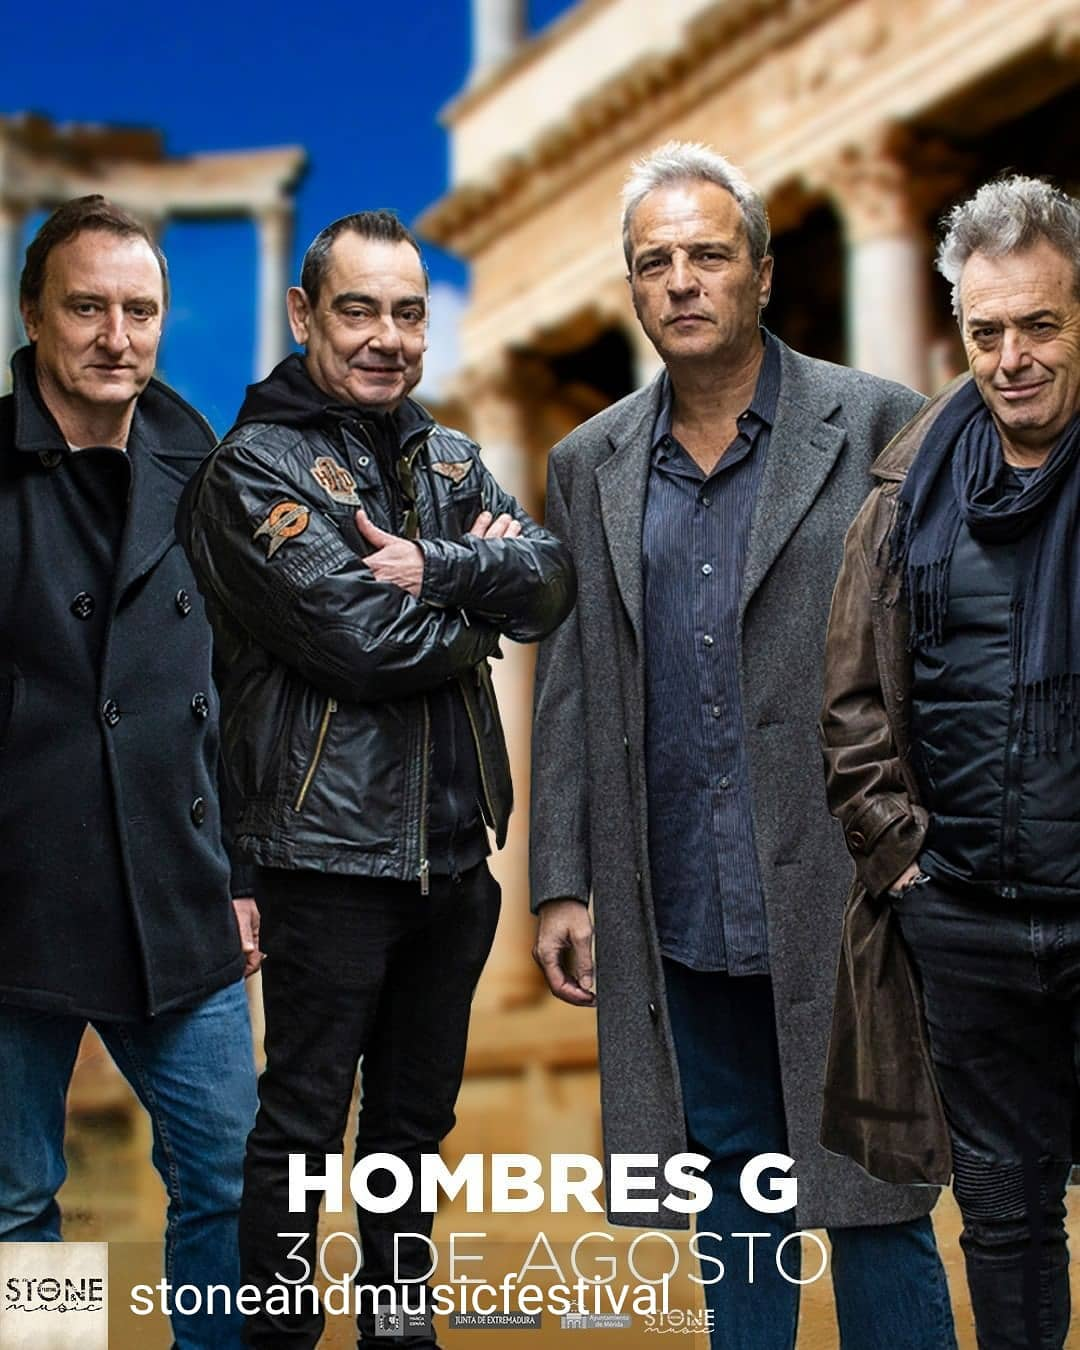 Hombres G 1